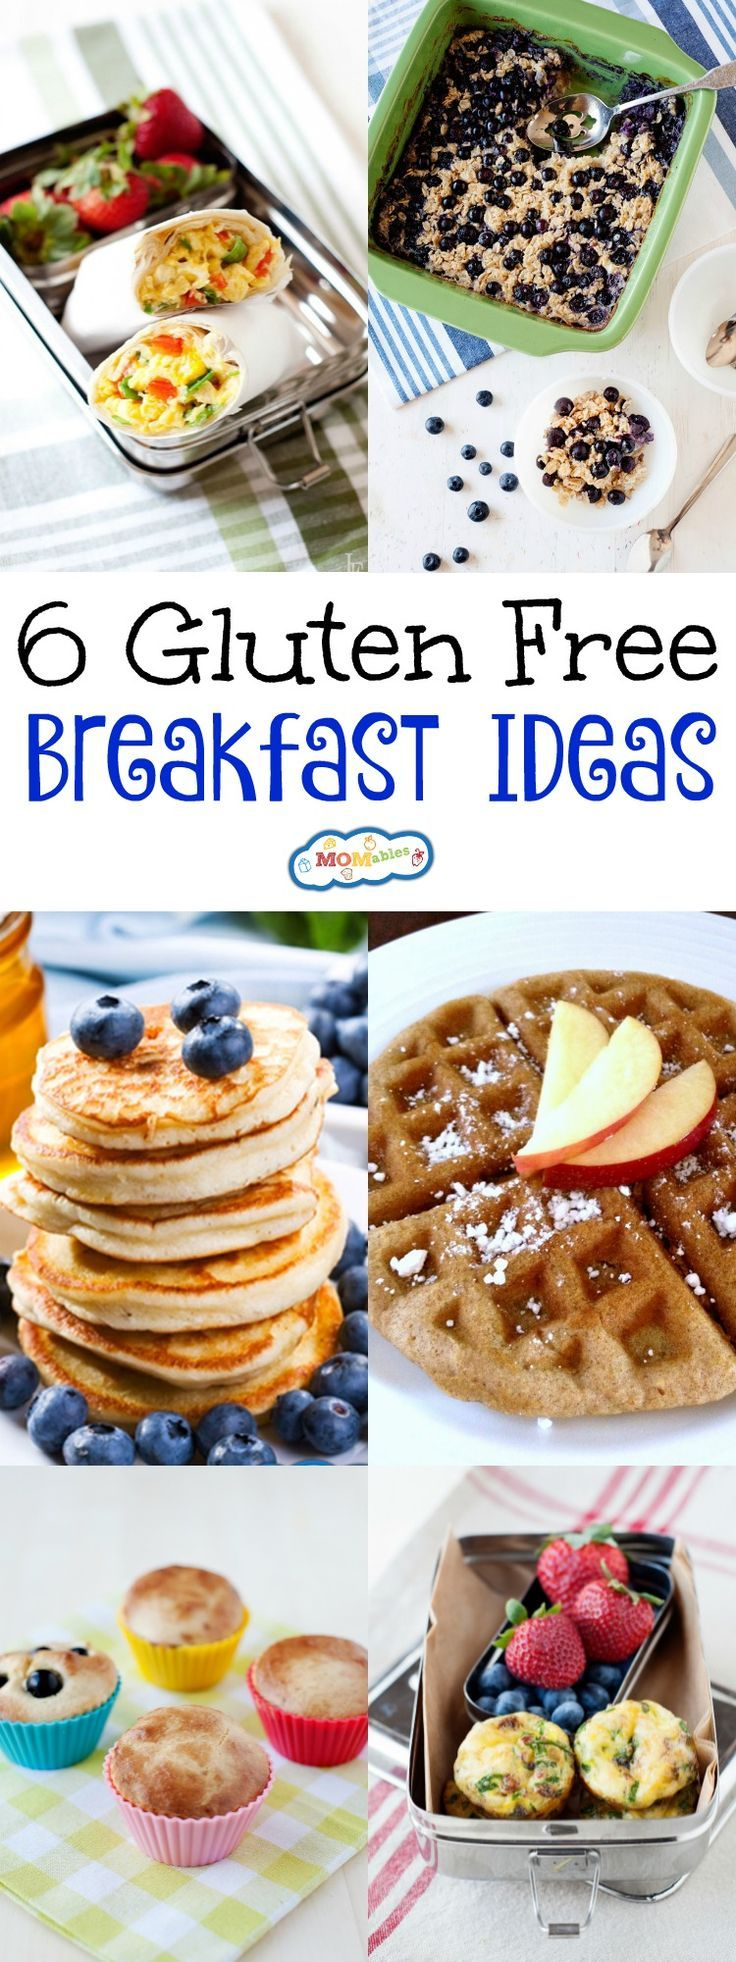 These 6 gluten free breakfast recipes will please the whole family! Move over, cardboard bread. Make these breakfasts to kickstart your day!